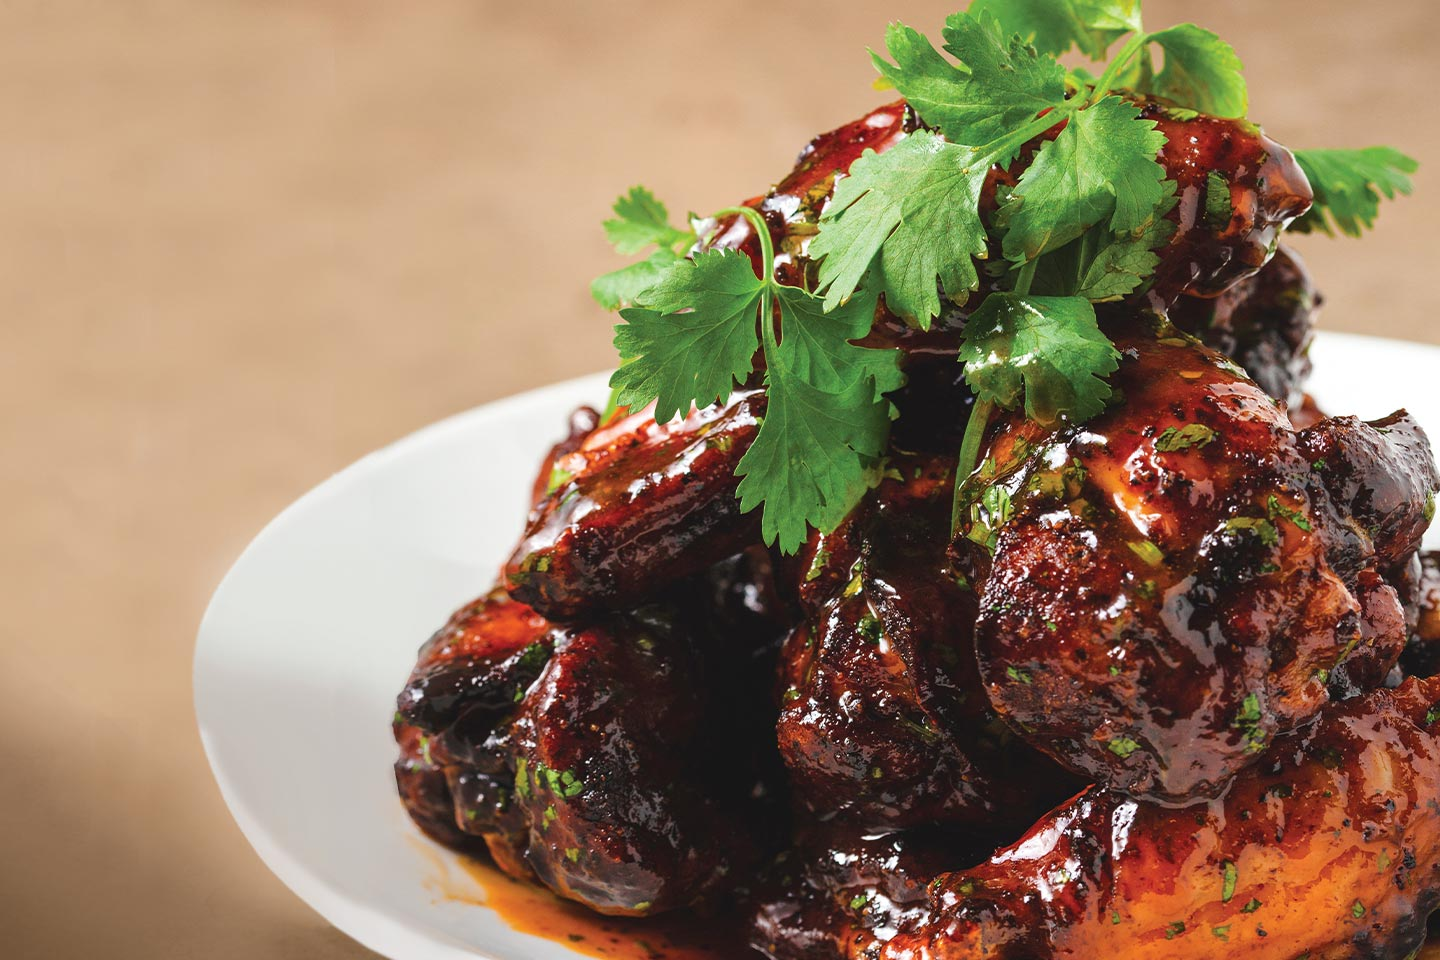 wings from food works with their honey-sriracha wing sauce